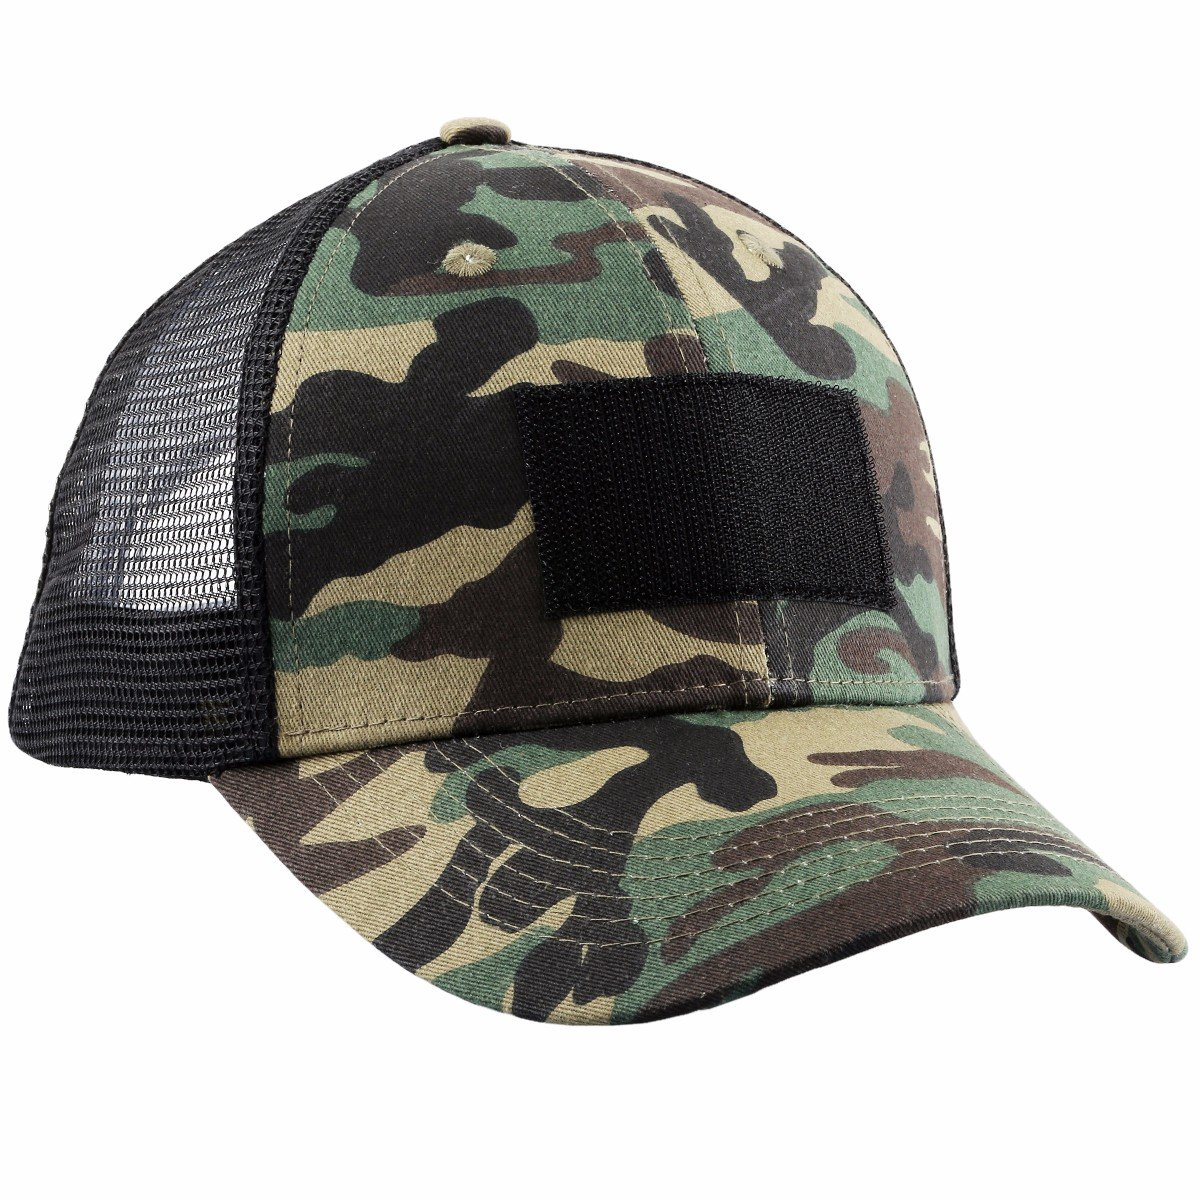 squaregarden Operator Tactical Cap Camo Baseball Caps Hats with Tactical USAフラグパッチ  8-Army Camouflage B075N1KNFD